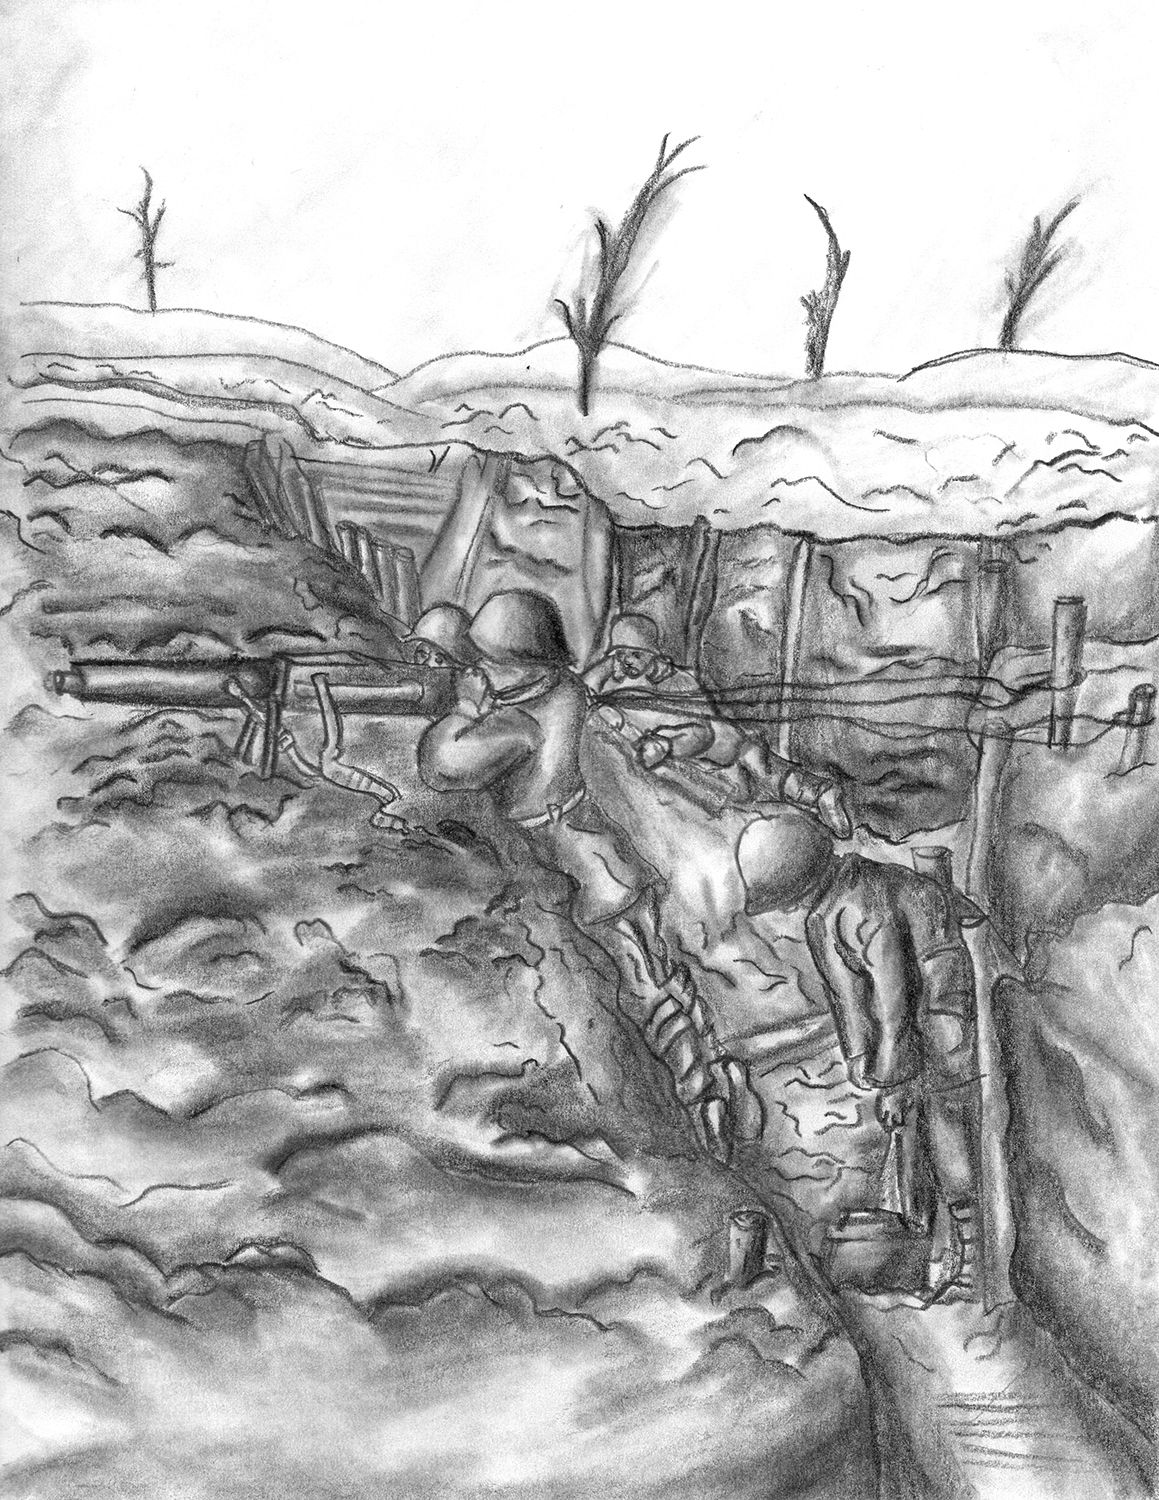 Carnage of War by Zach Blackley, graphite on paper - Innisdale Secondary School